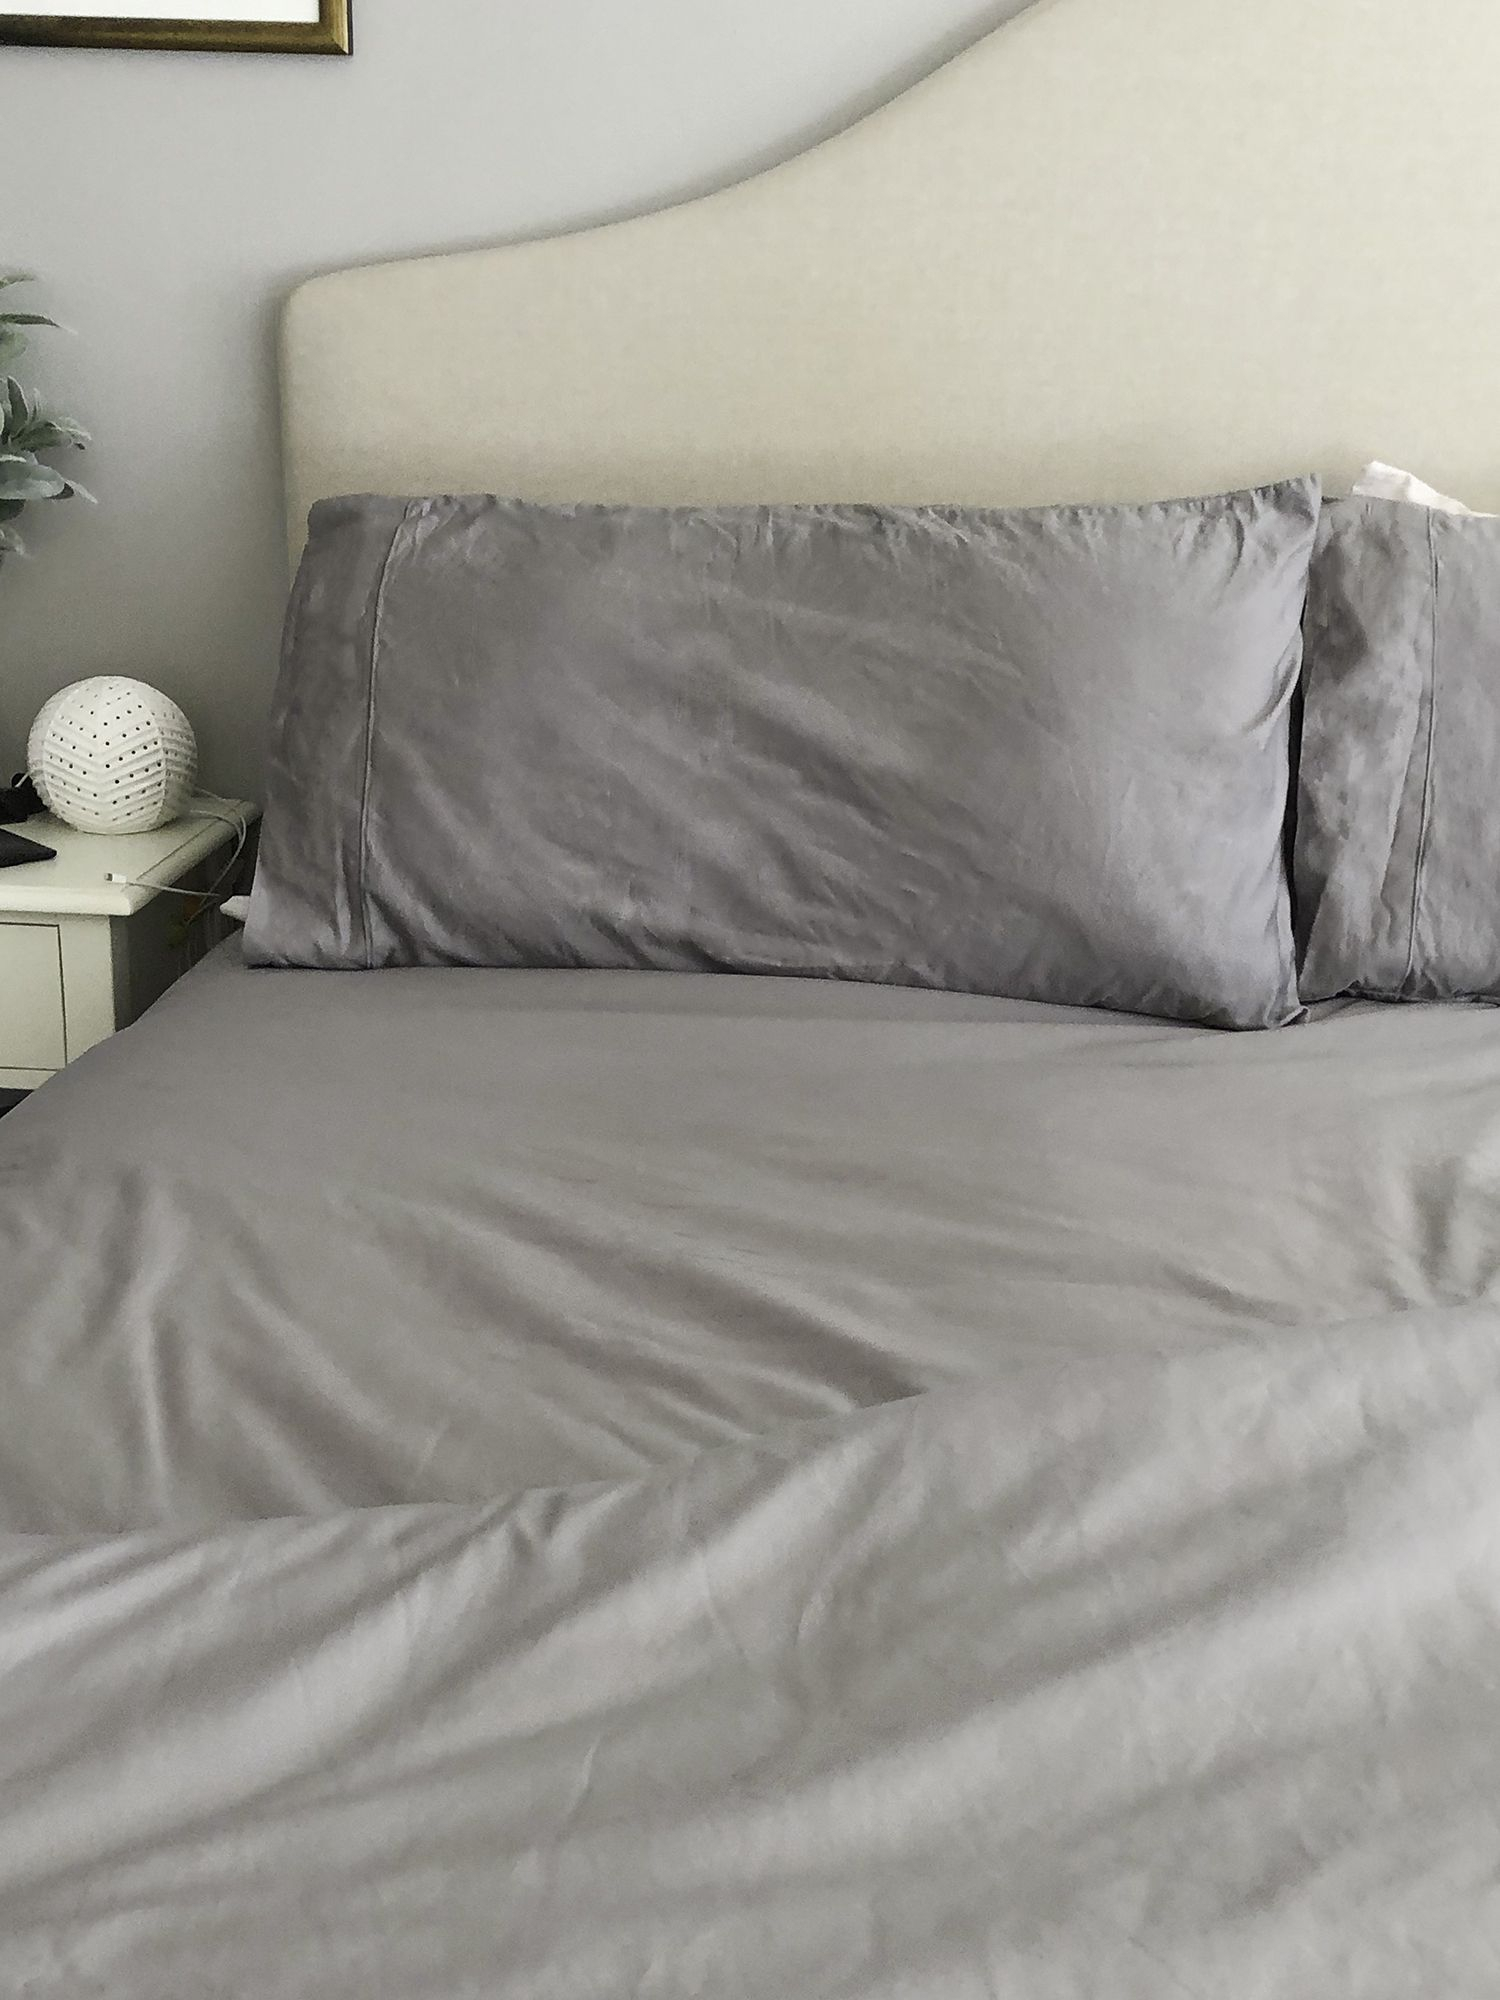 Spreadsheet Bed Sheets Intended For The 7 Best High Thread Count Sheets To Buy In 2019